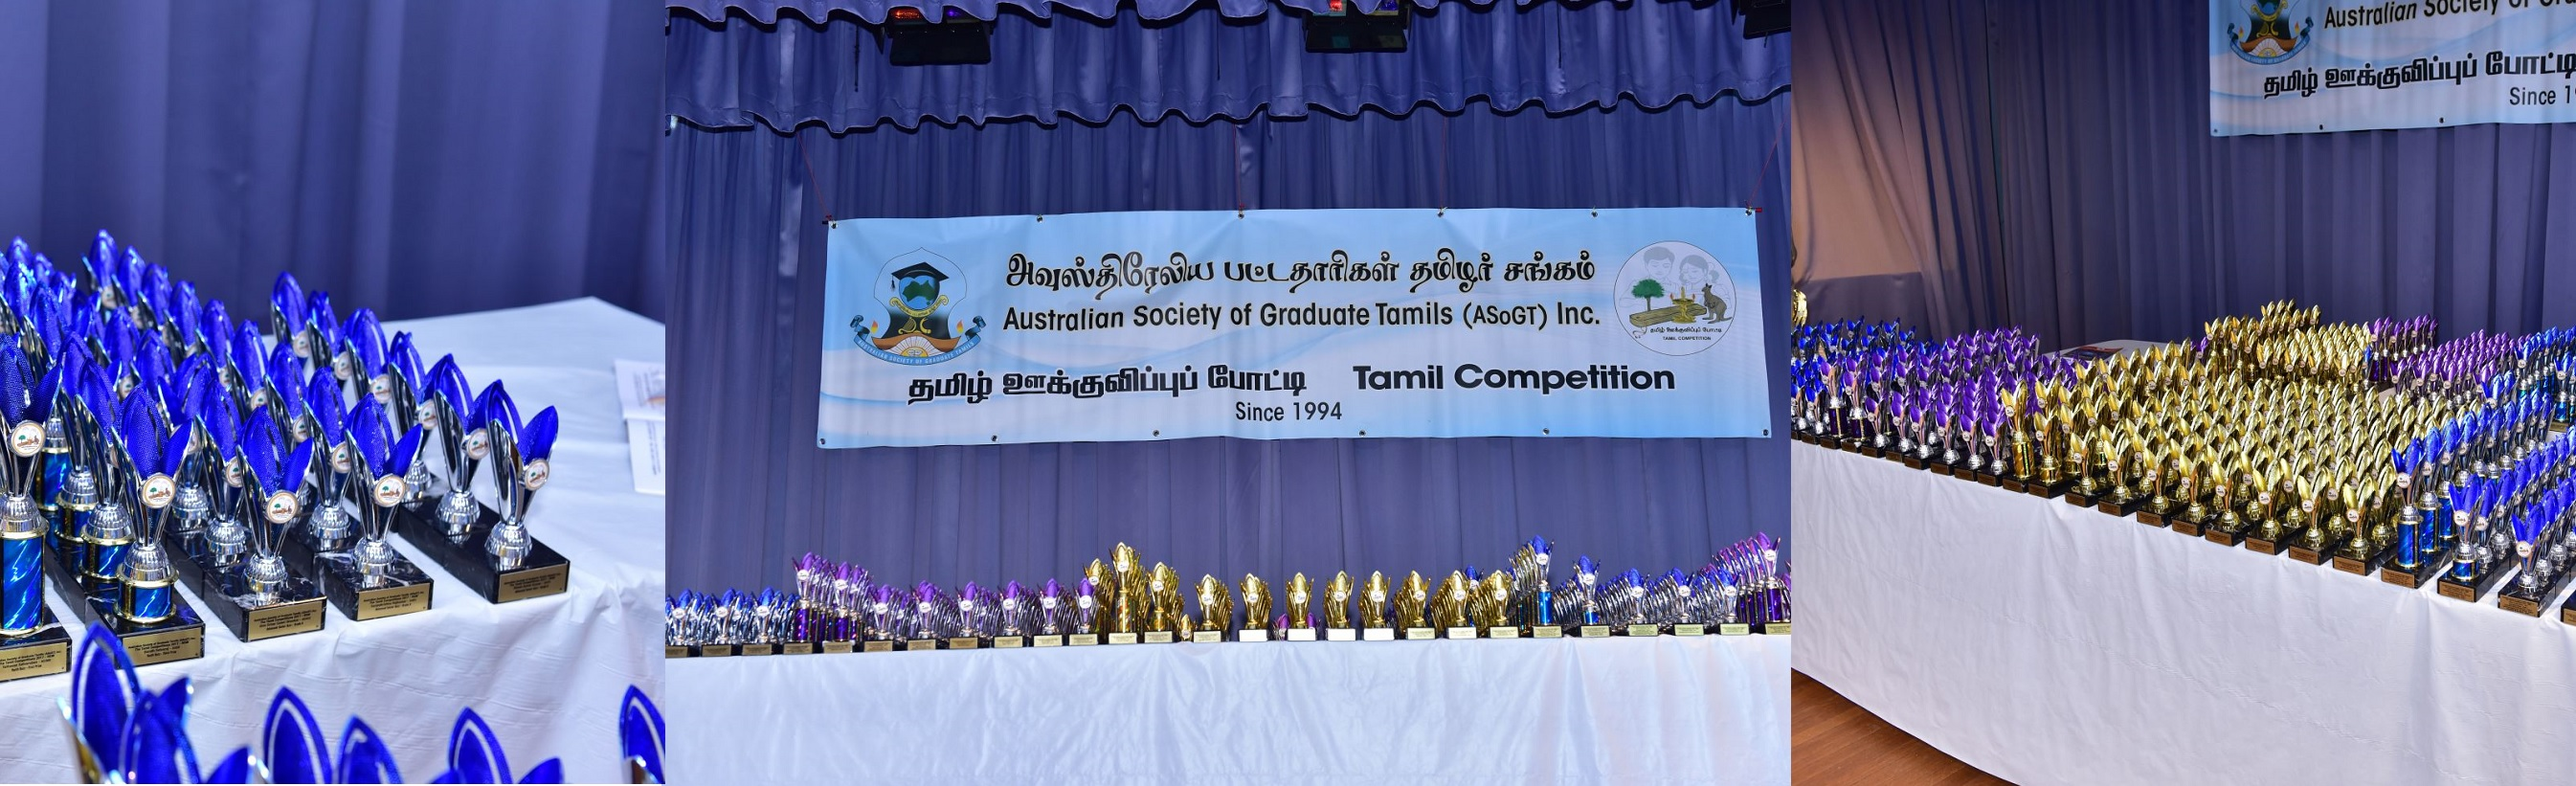 Tamil Competition